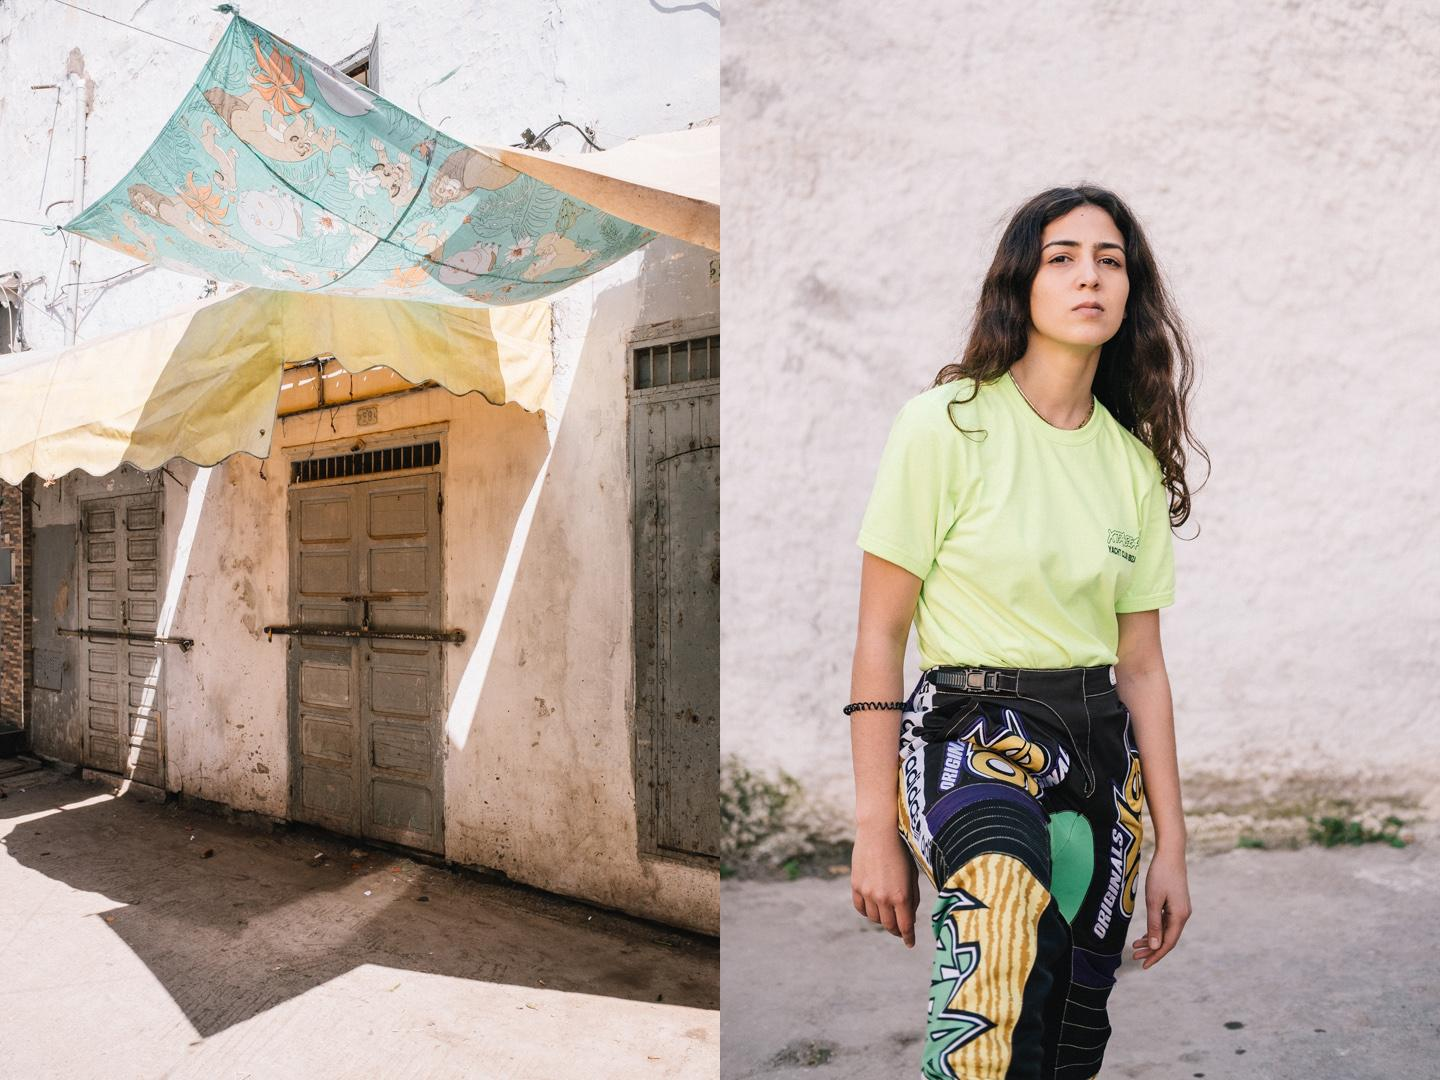 Sofia says that imposing her way of being was not so difficult for her because she began to assert herself in a particular style of clothing very early on. However, in Morocco, she feels oppressed by the gaze of people, the street remains a territory where clothing identity remains an issue, difference a provocation.